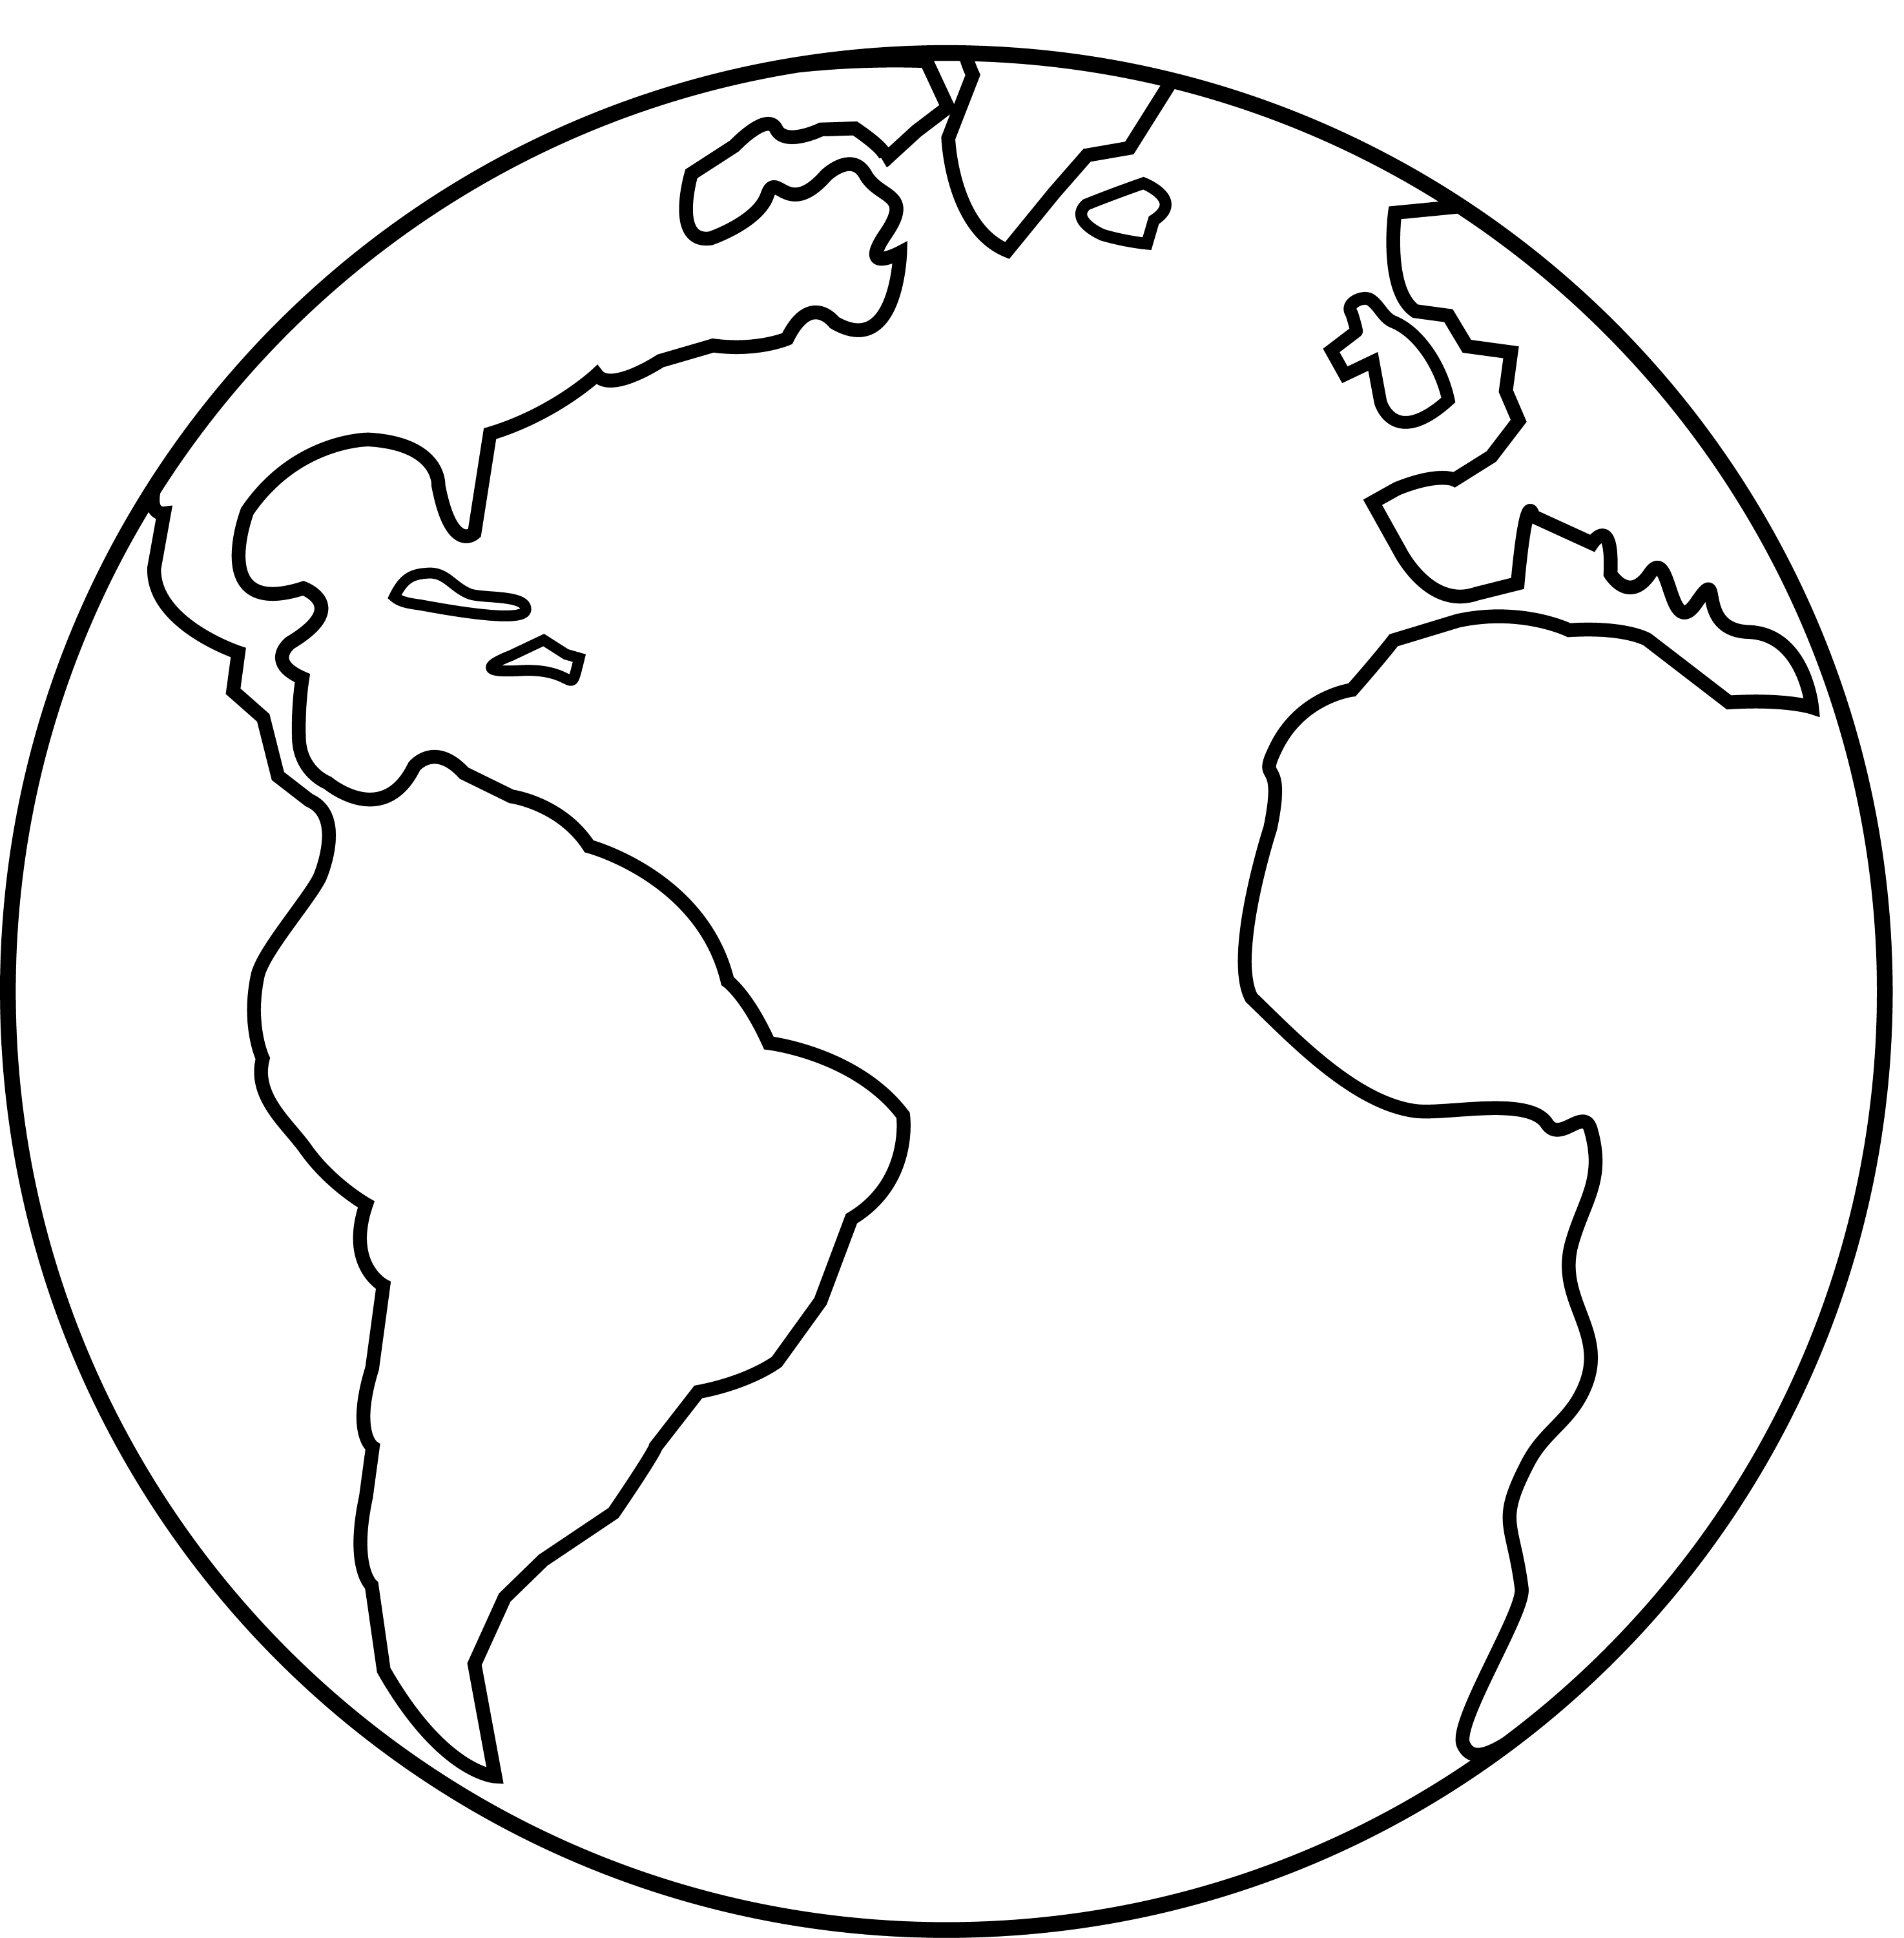 earth coloring pages free free printable coloring page earth day cratekids blog pages earth free coloring